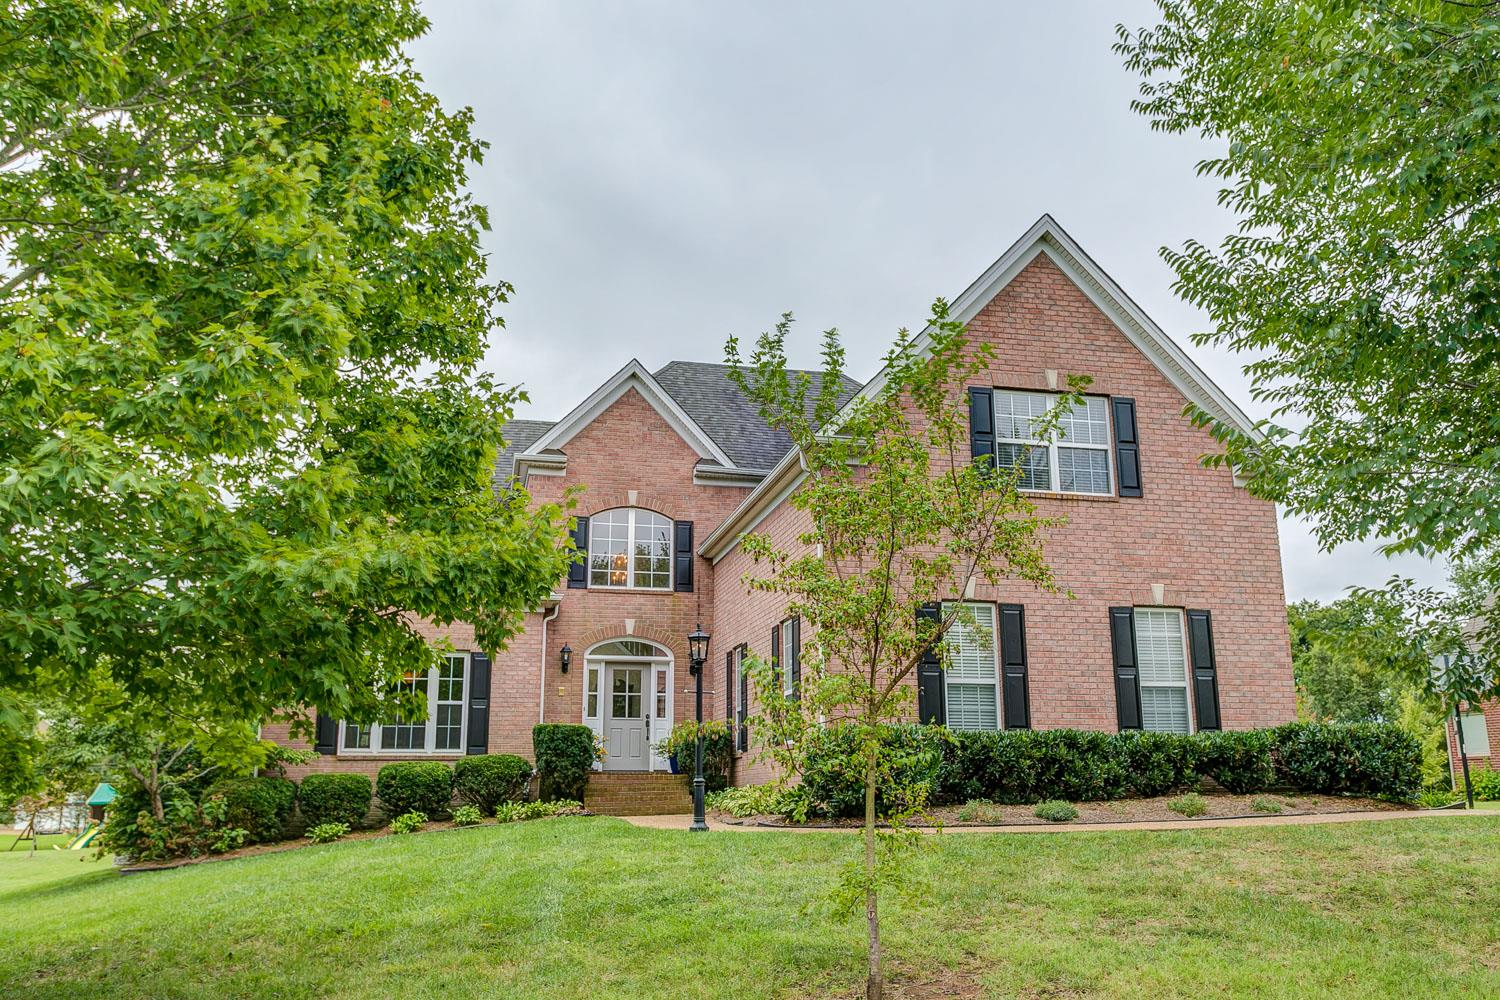 248 Chester Stevens Rd, Franklin, TN 37067